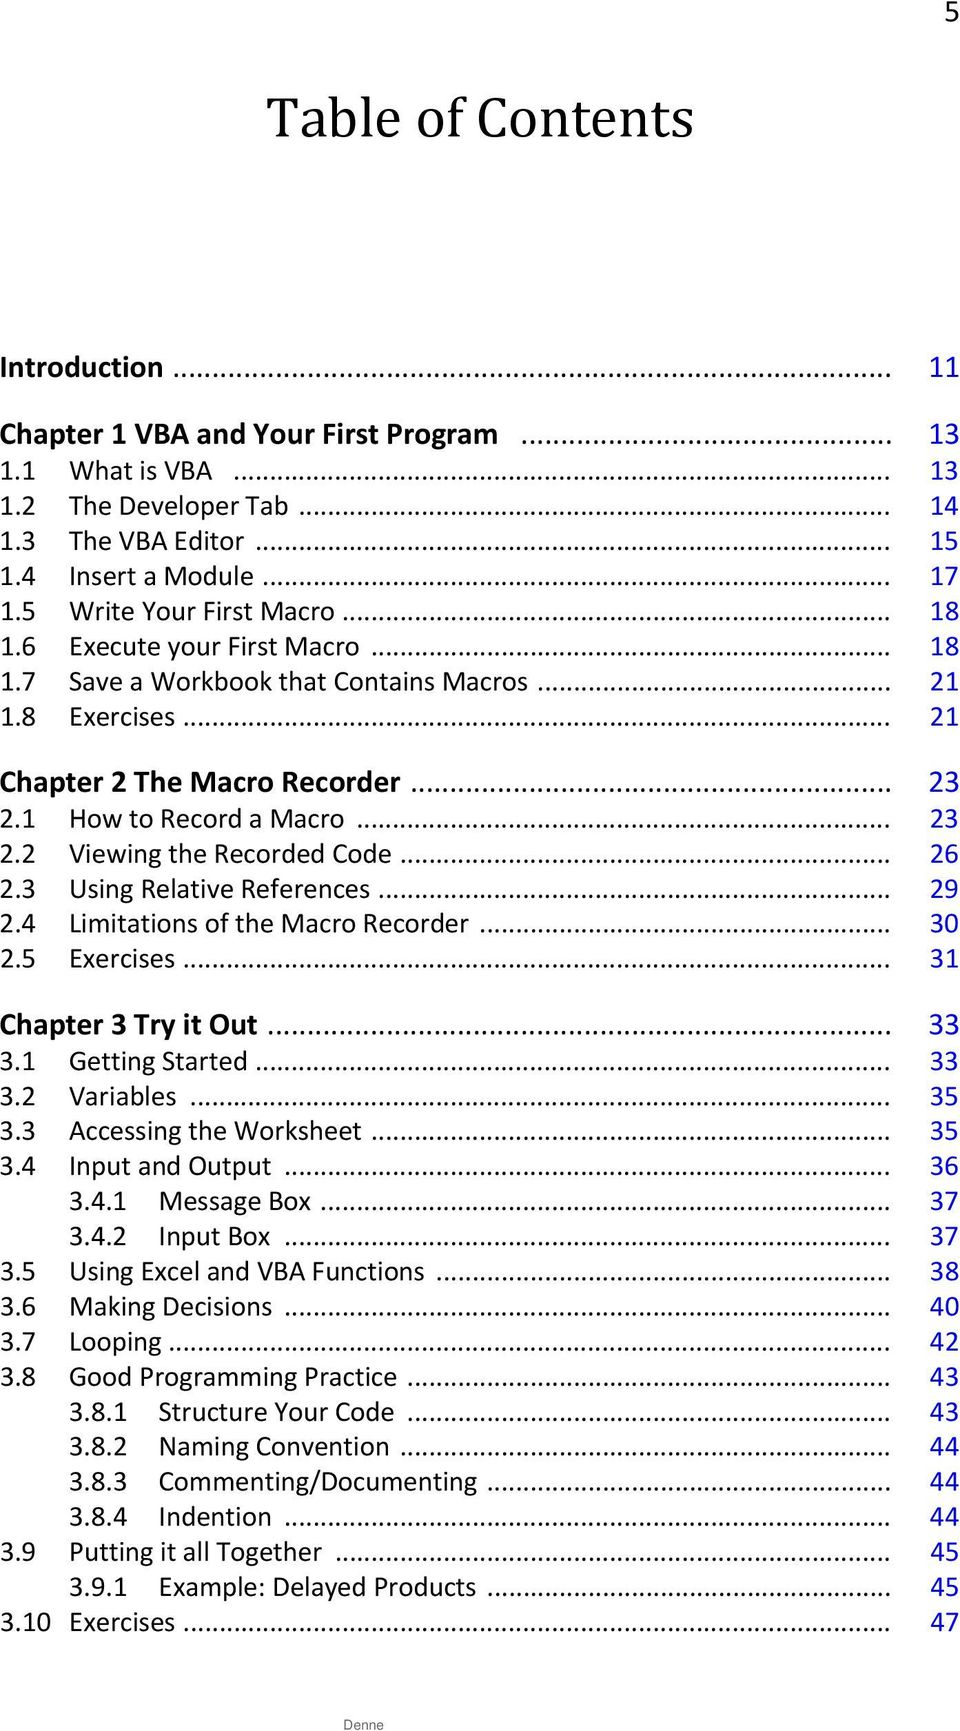 .. 26 2.3 Using Relative References... 29 2.4 Limitations of the Macro Recorder... 30 2.5 Exercises... 31 Chapter 3 Try it Out... 33 3.1 Getting Started... 33 3.2 Variables... 35 3.